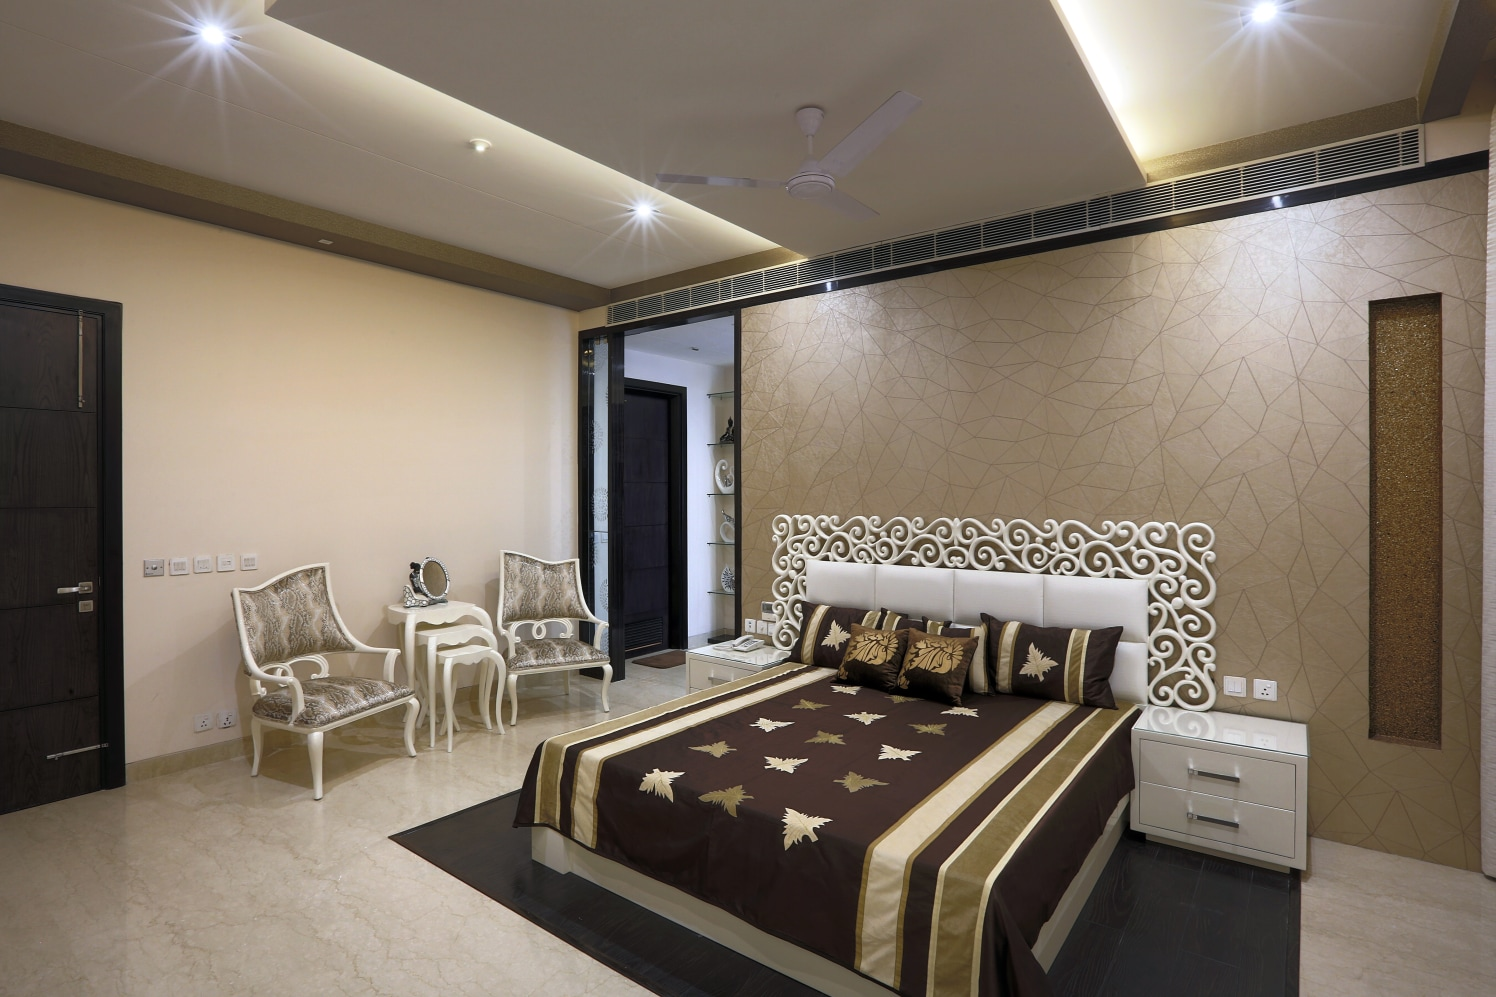 King Size Bed with Marble Flooring and Patterned Wall by Sumita Mehra Bedroom Contemporary | Interior Design Photos & Ideas